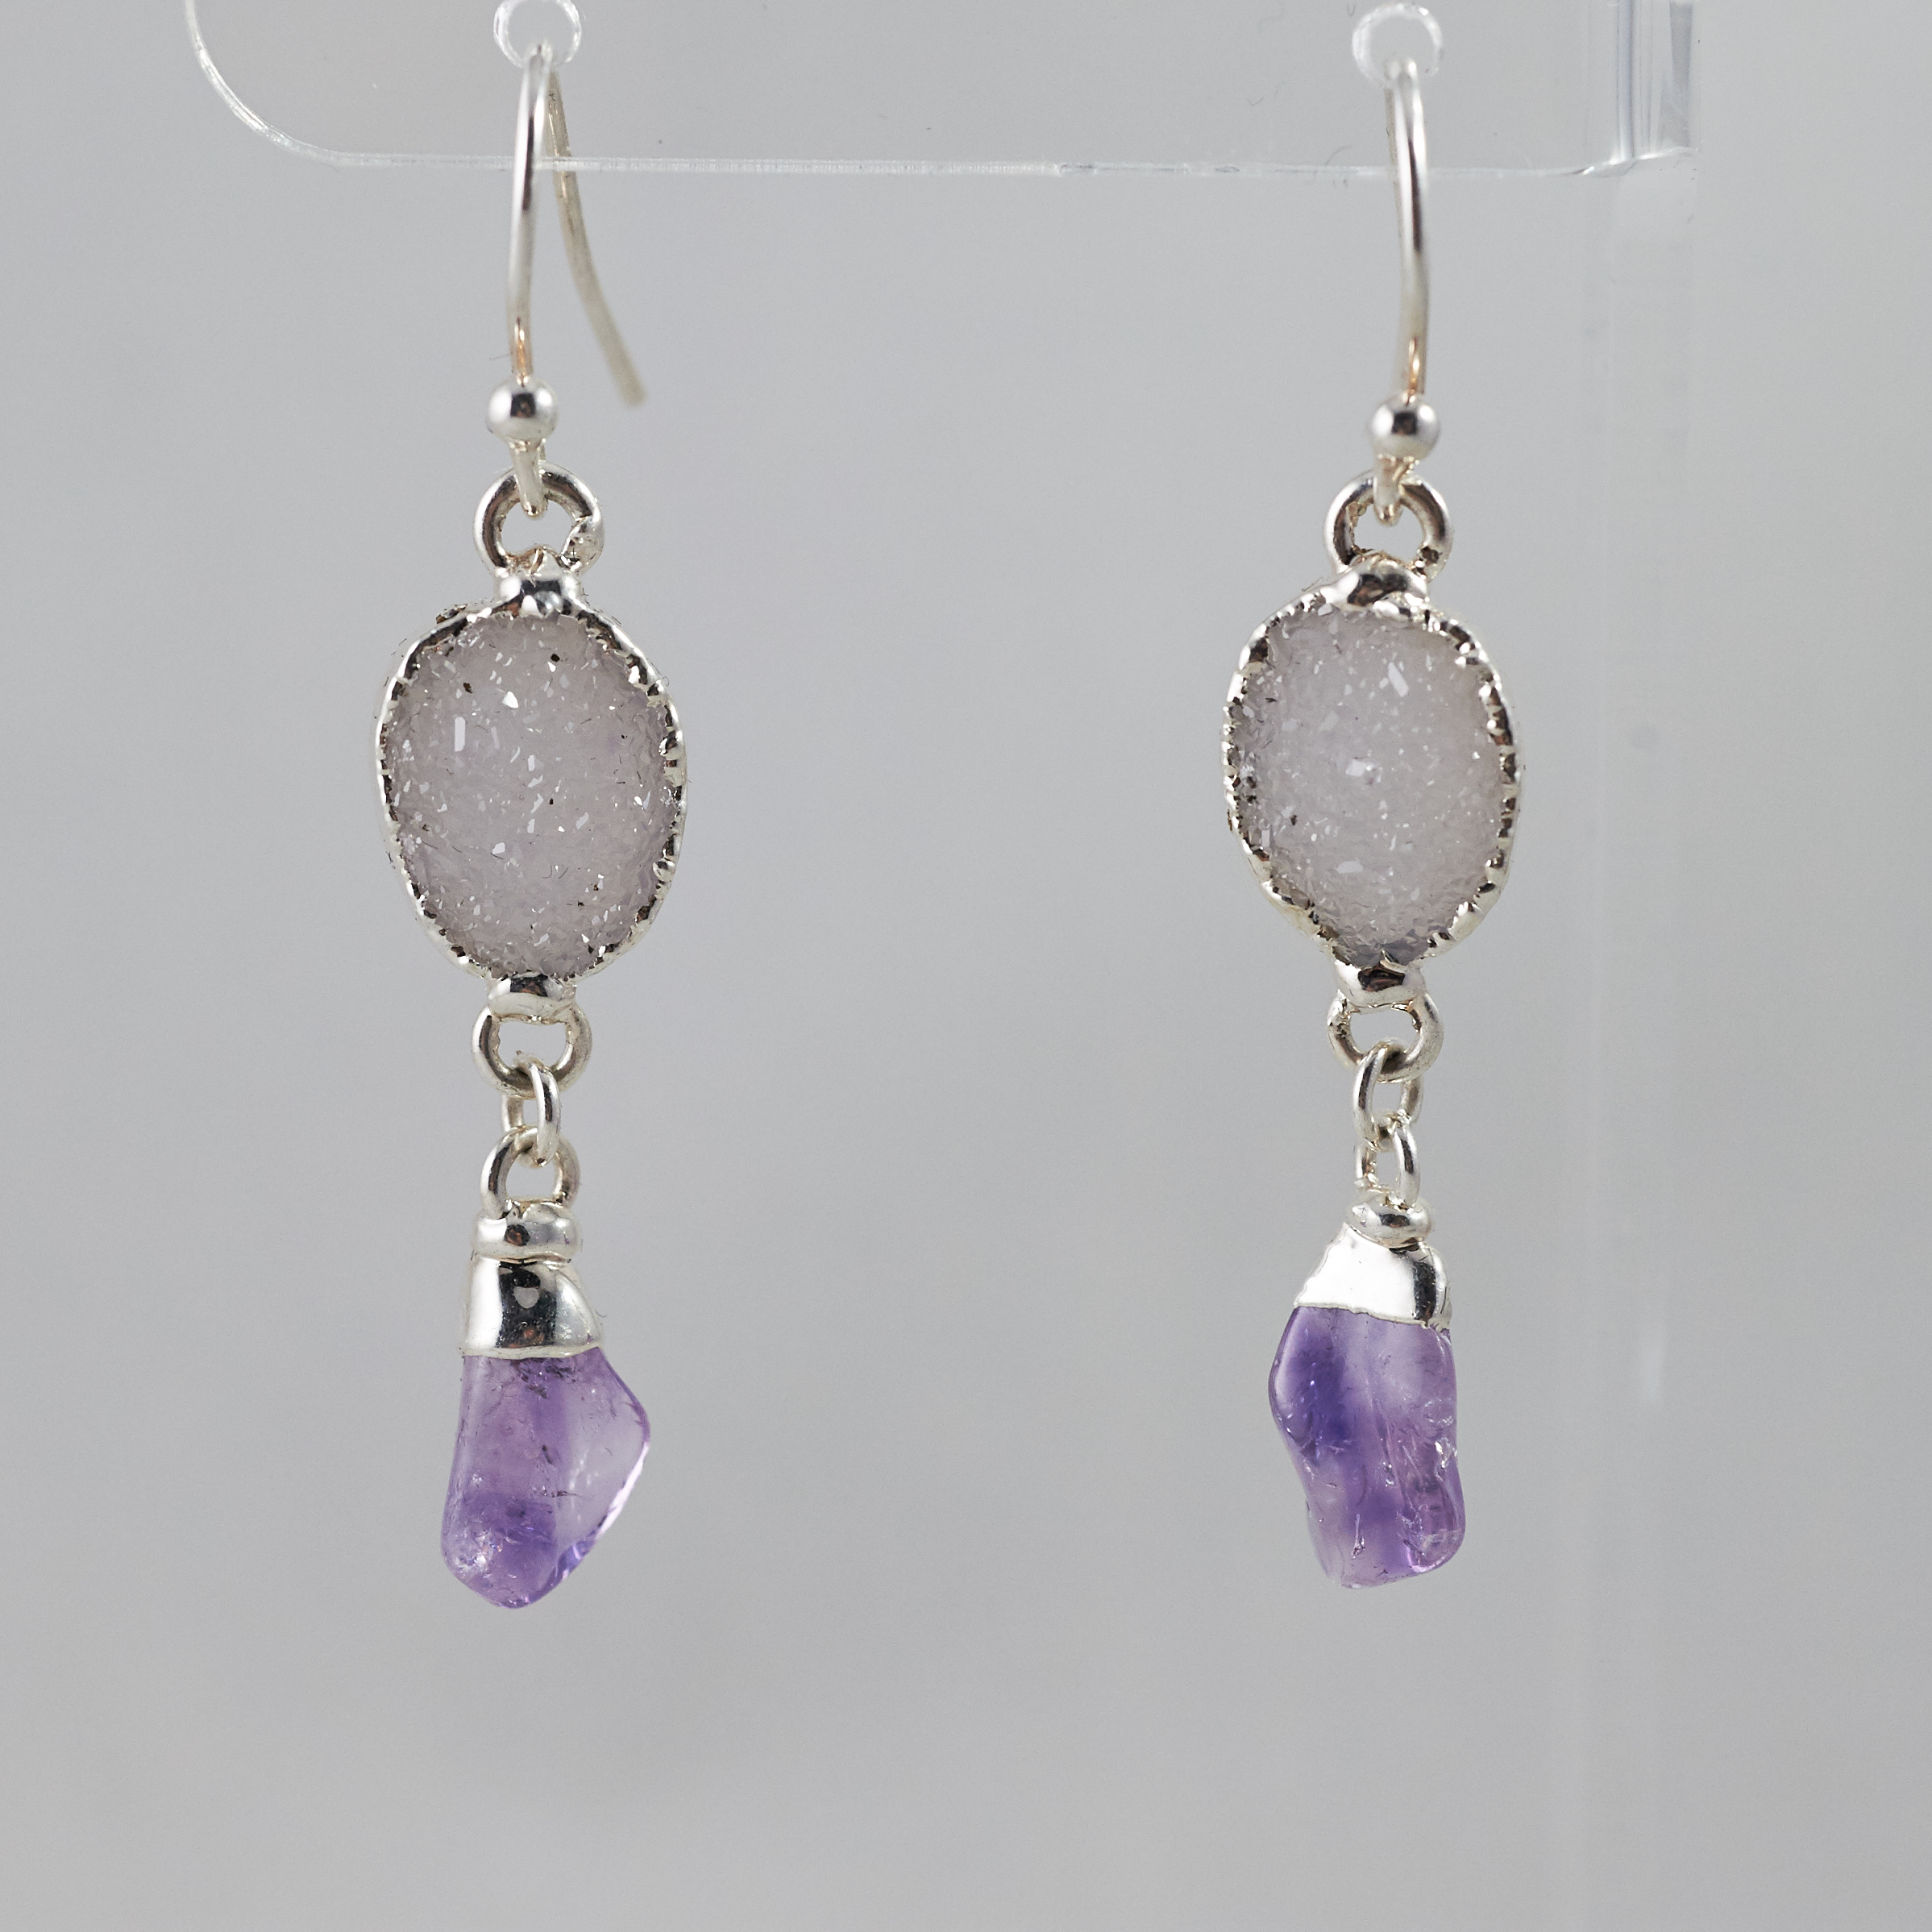 Druzy _ Amethyst Polished Points Dangling Earrings .jpg SJE00009